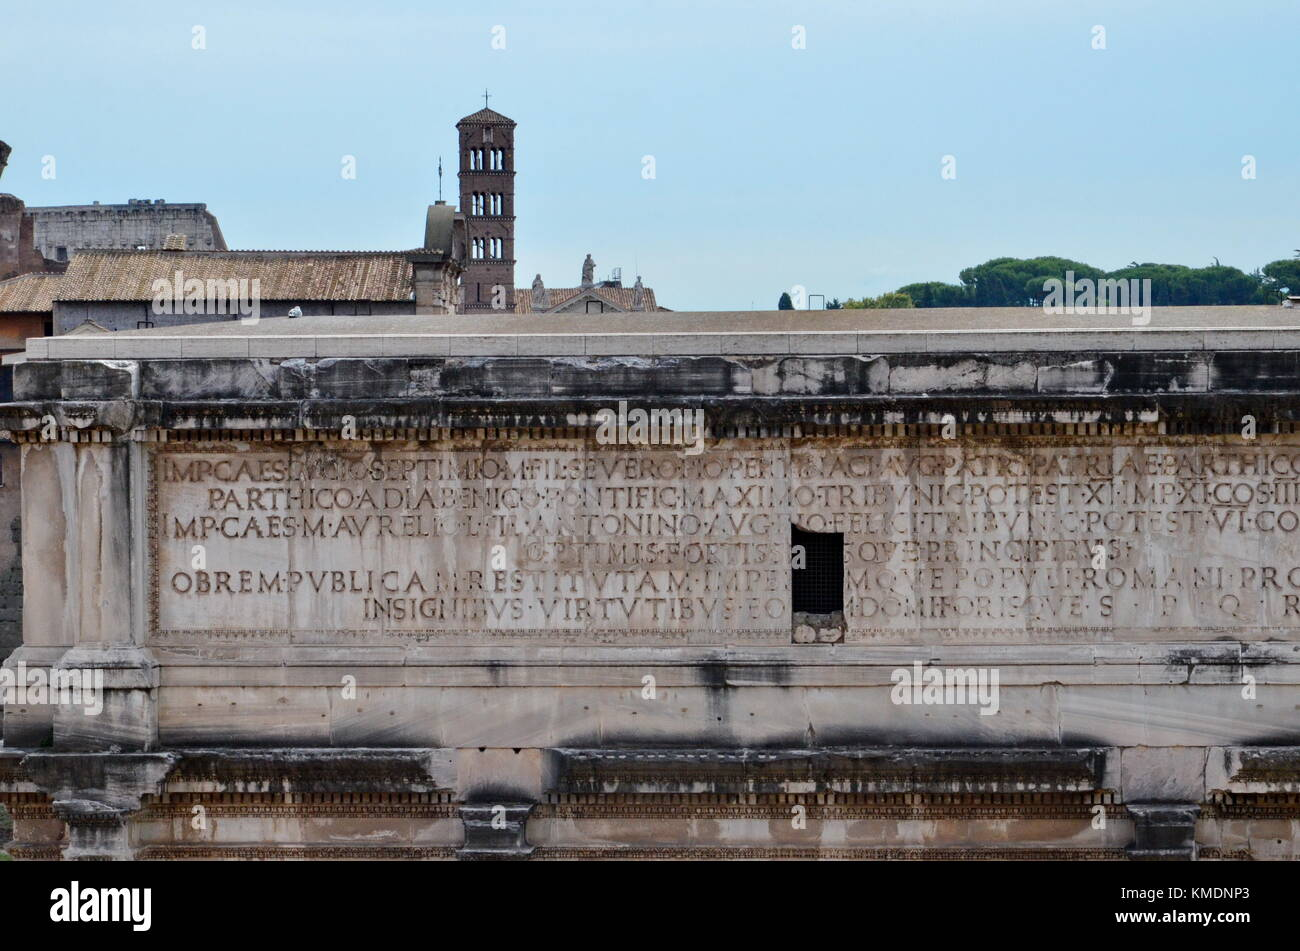 Triumphal Arch of Septimius Severus in the Roman Forum, Italy - Stock Image